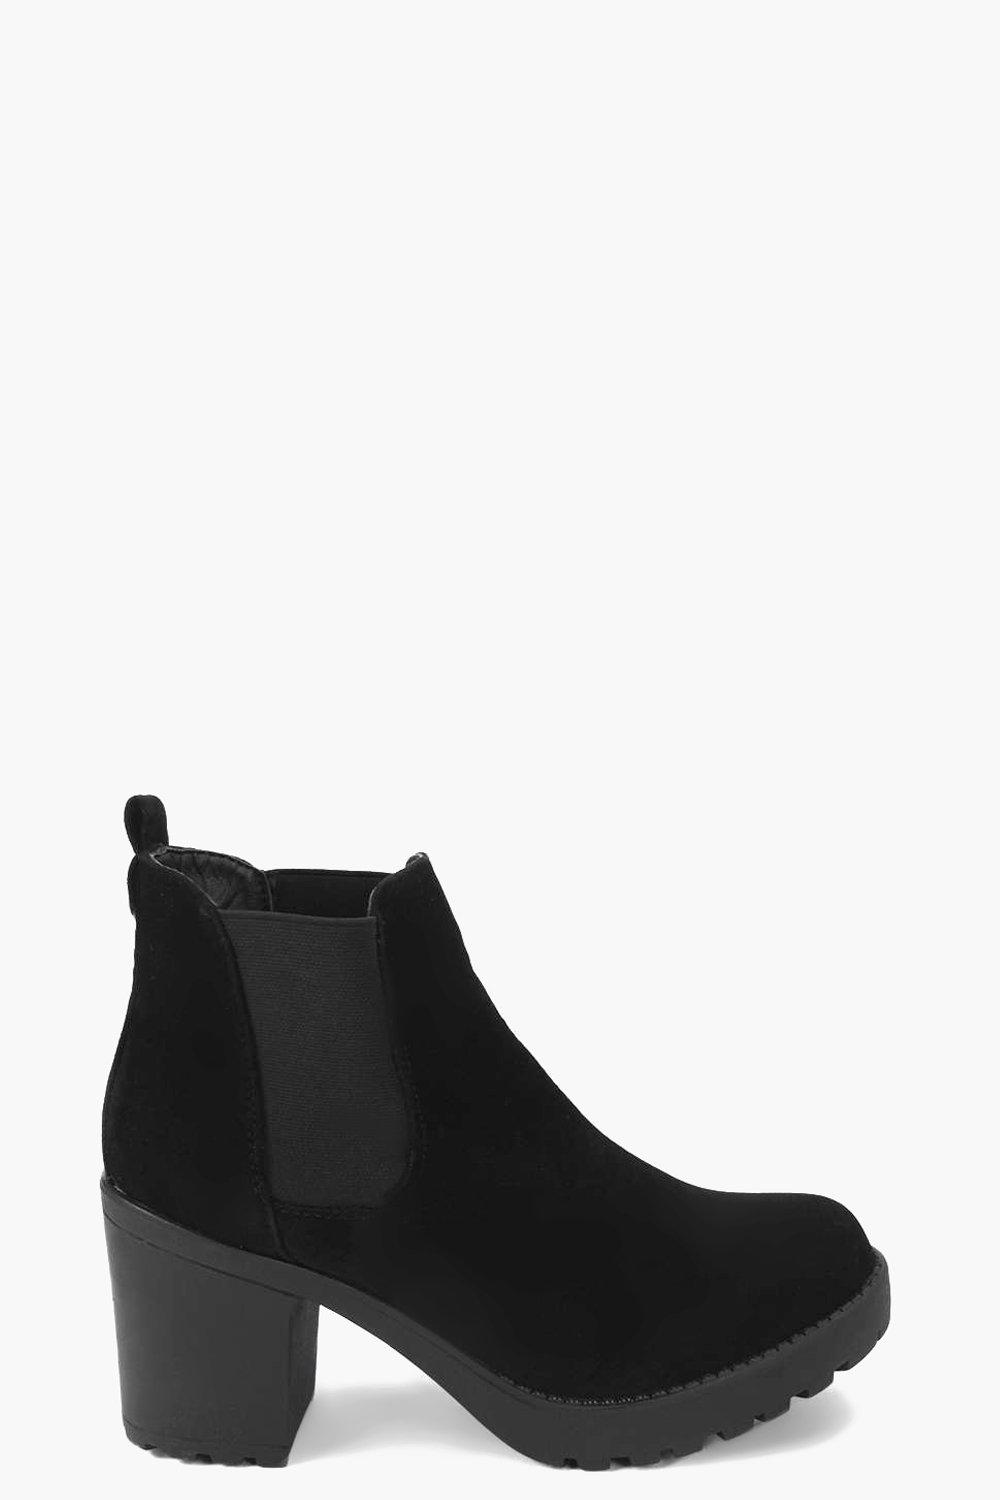 Alice Cleated Pull On Chelsea Boot